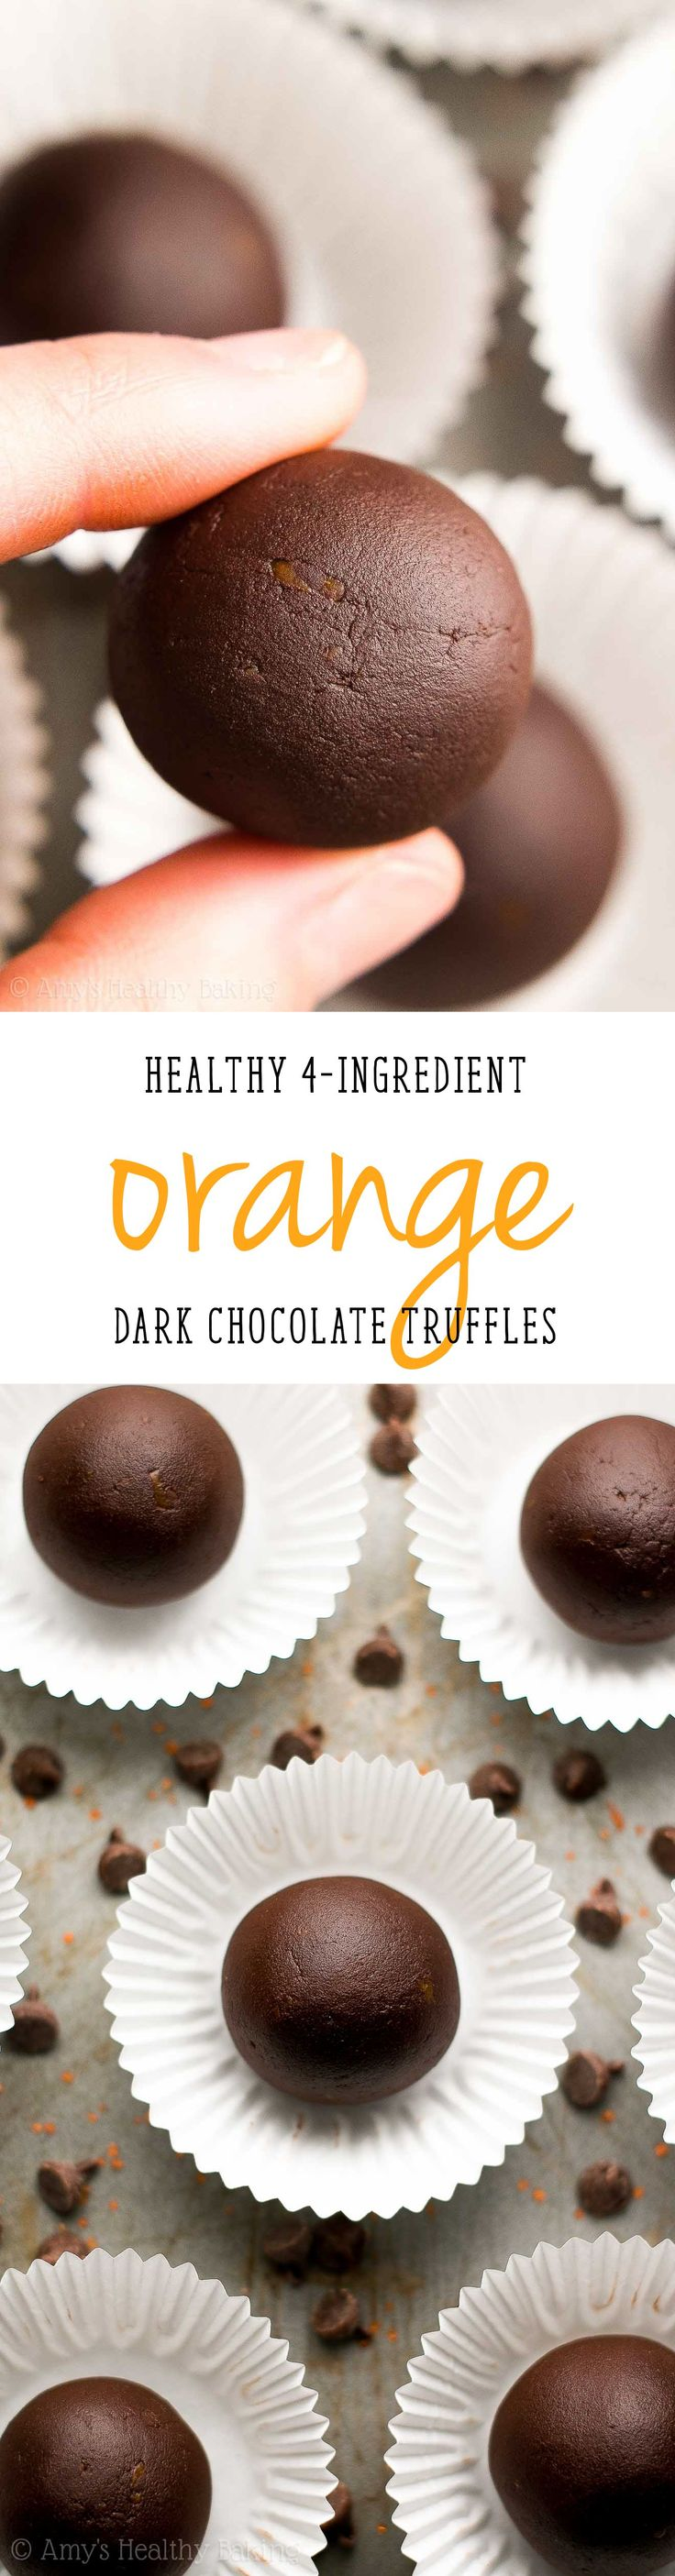 Healthy Dark Chocolate Orange Truffles -- only 4 ingredients & 21 calories! This easy recipe tastes so fancy, even with NO heavy cream or sugar! | easy dark chocolate truffles | homemade chocolate truffles recipe | easy healthy homemade candy